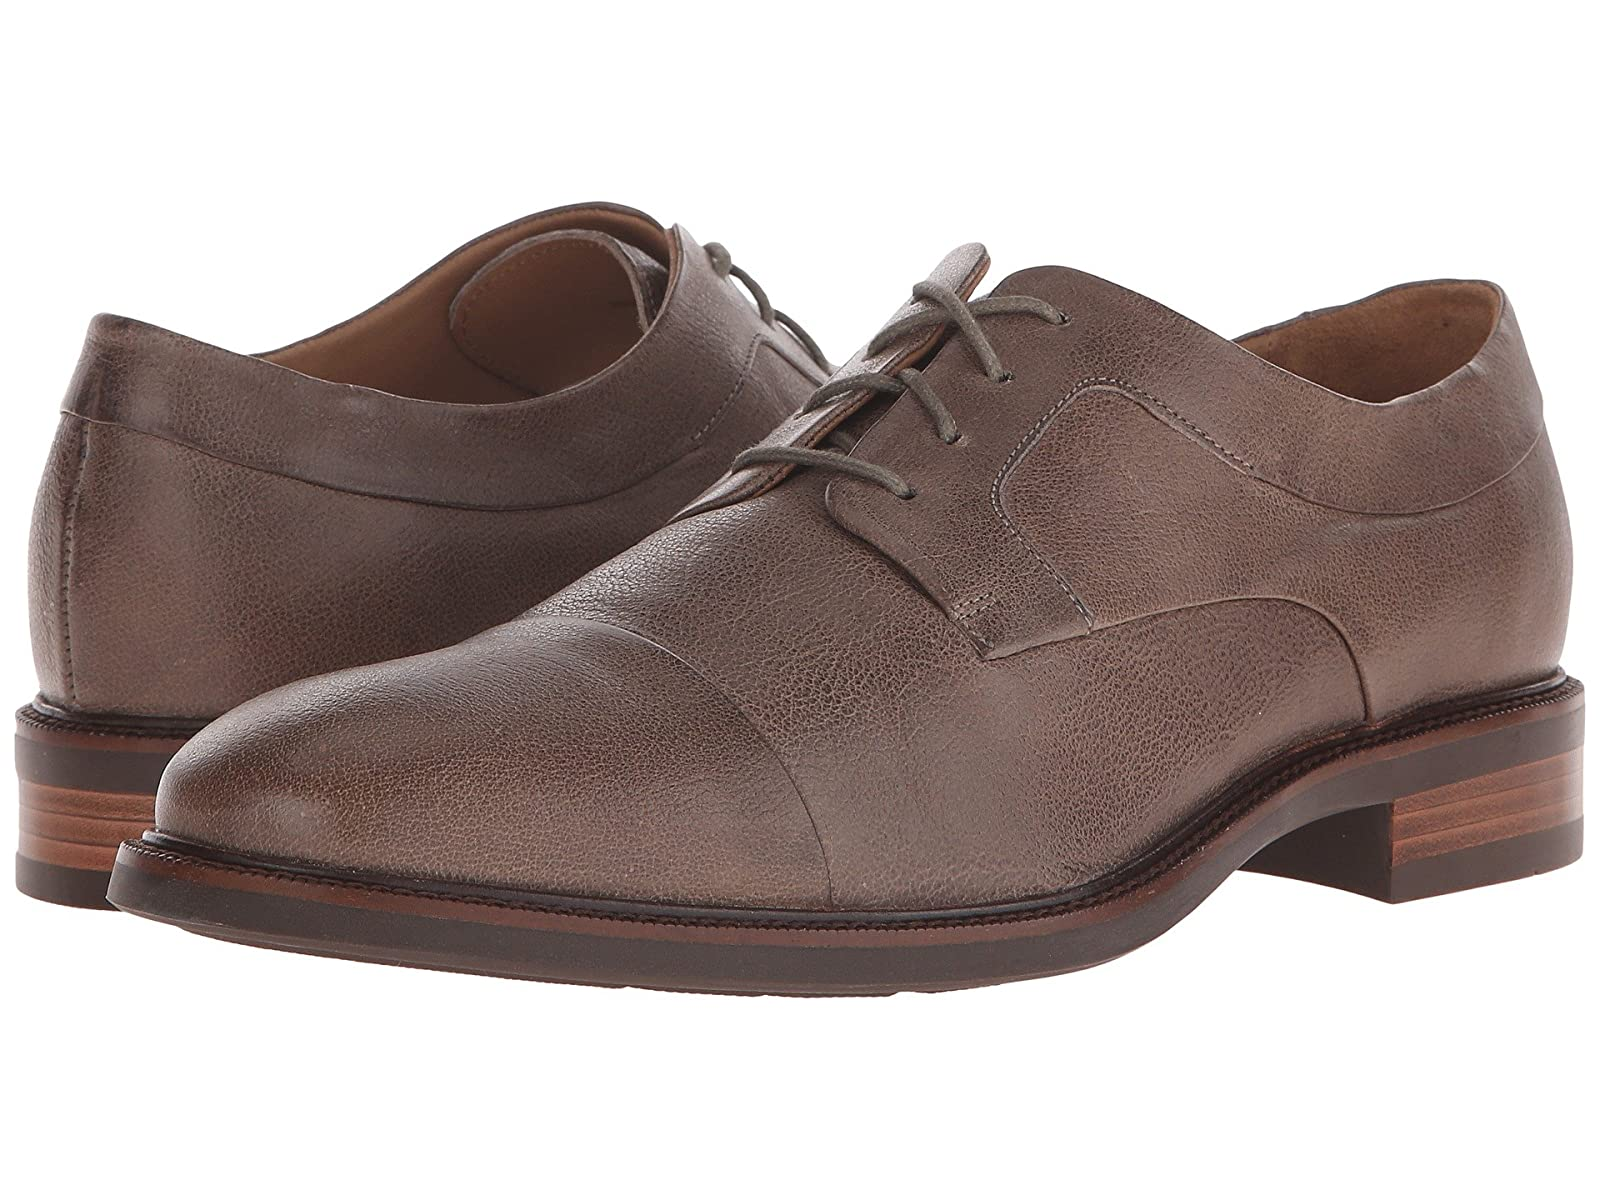 Cole Haan Warren Cap OxCheap and distinctive eye-catching shoes